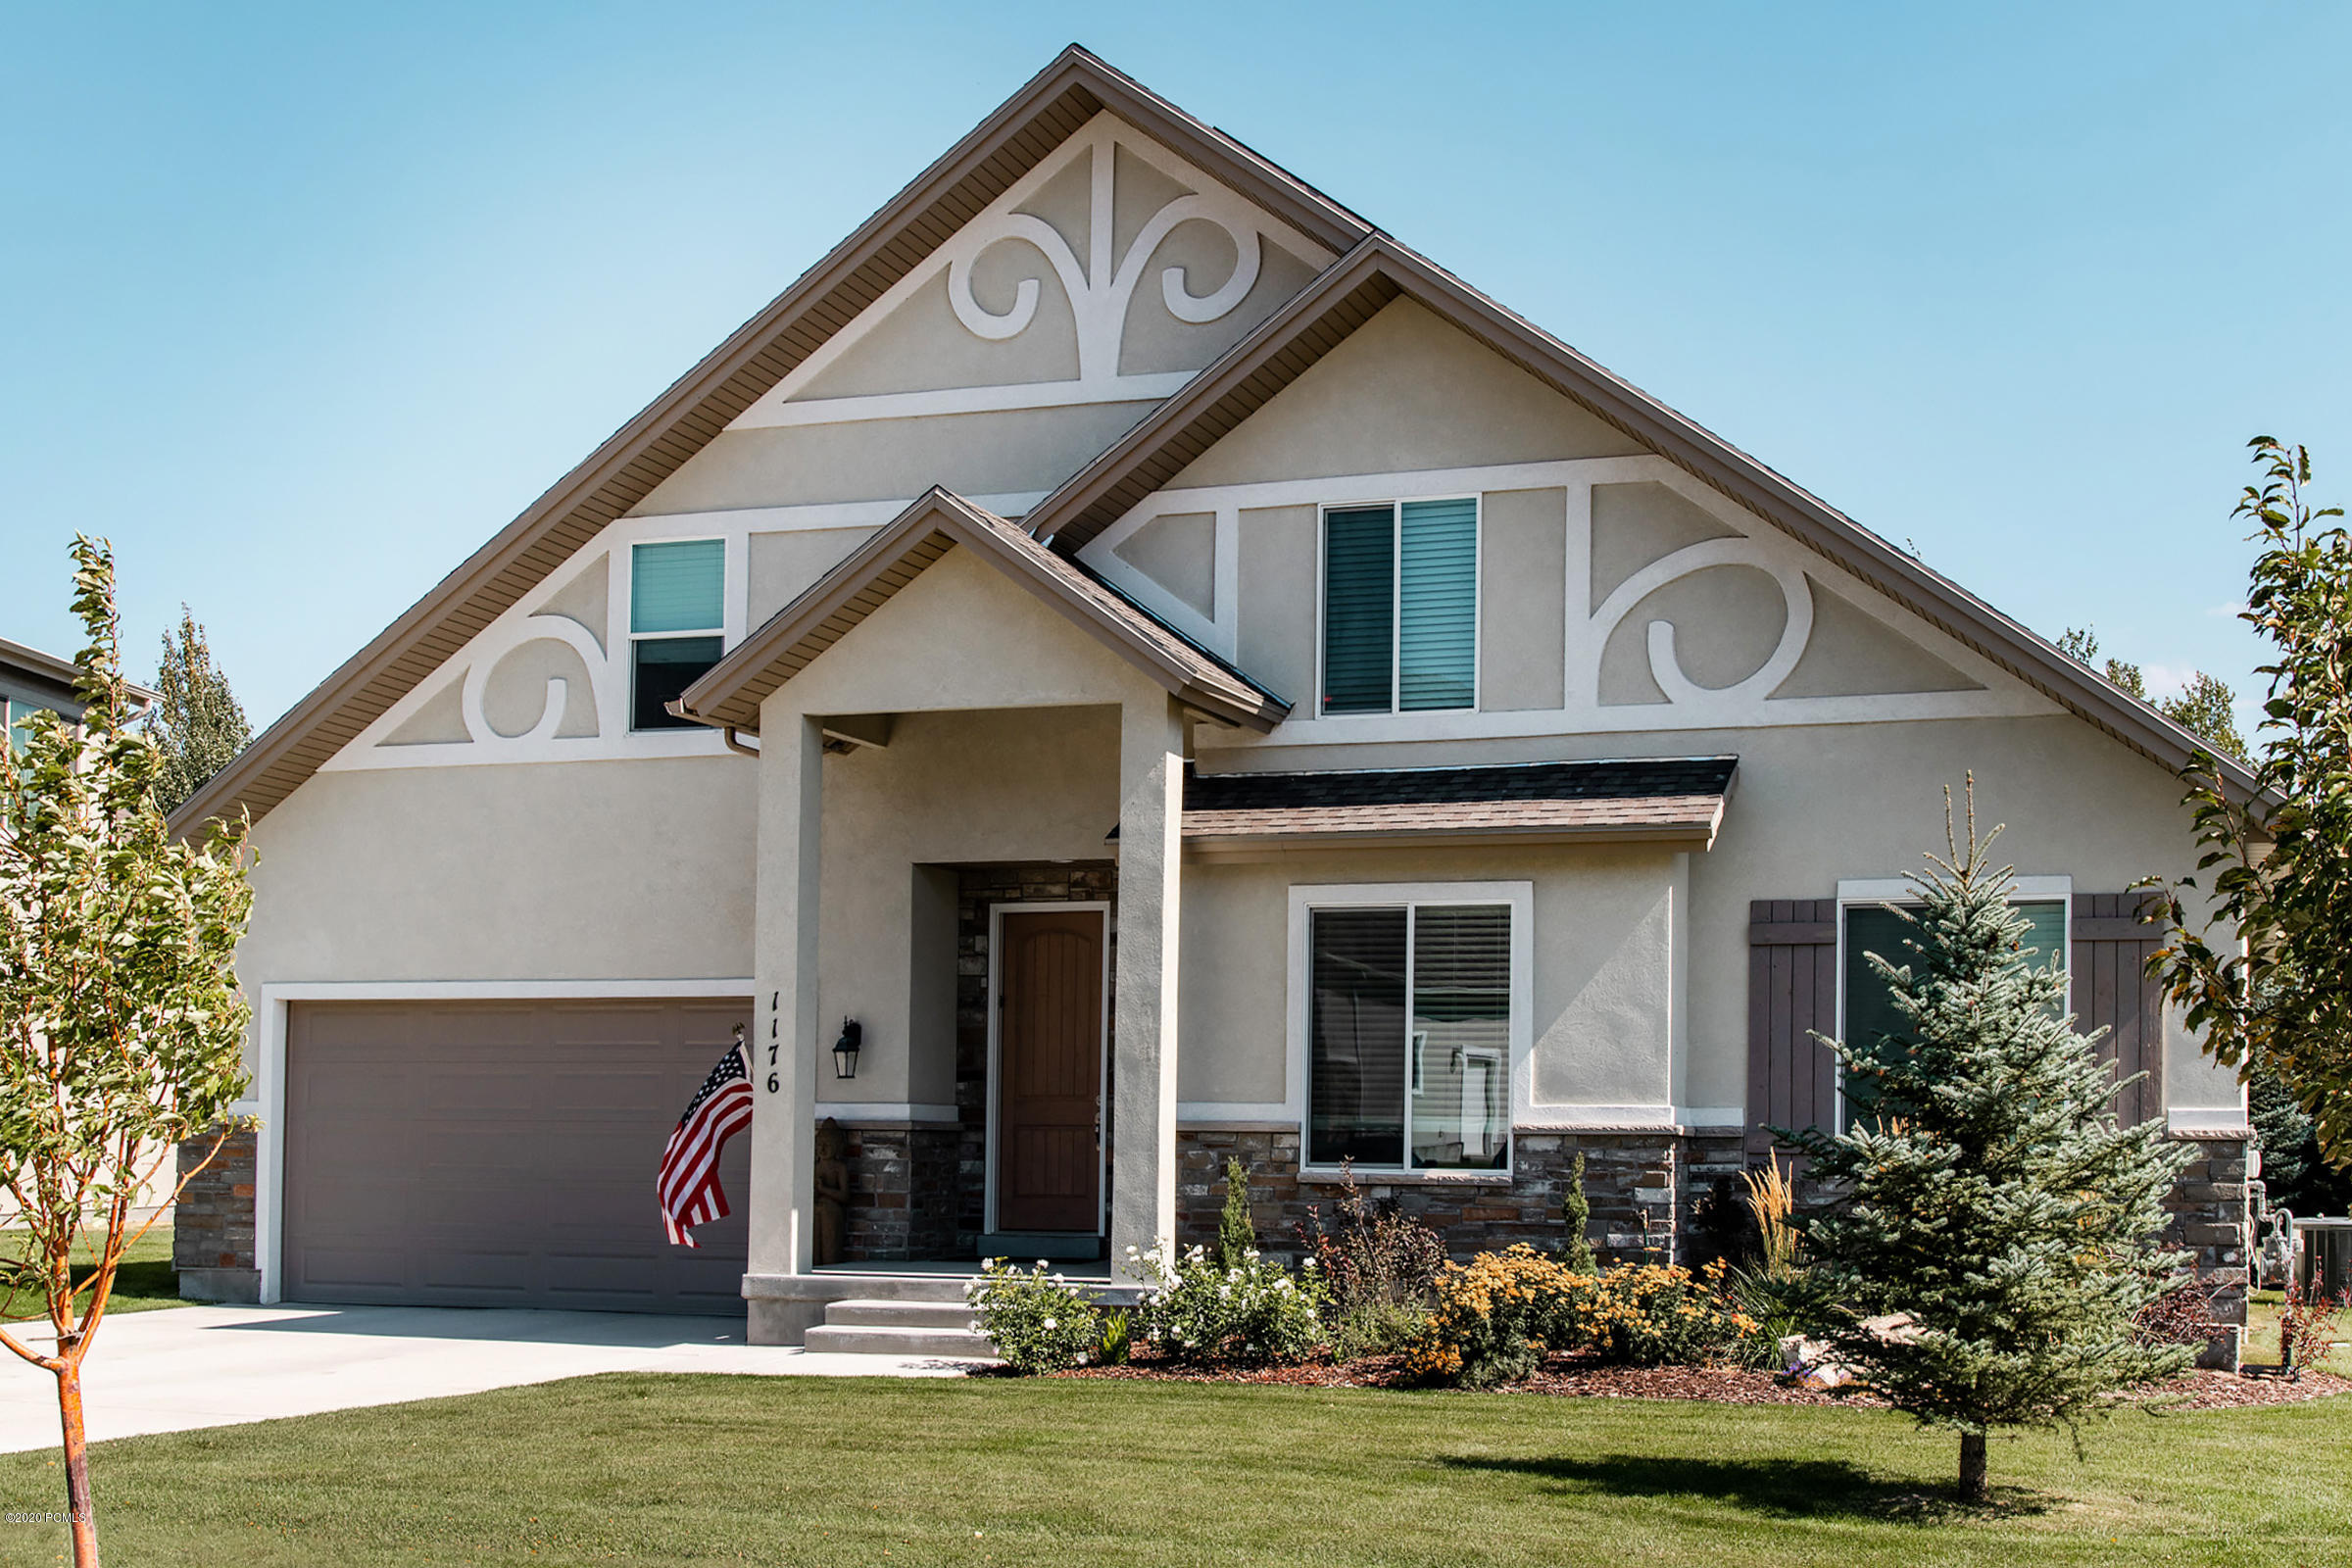 1176 Canyon View Road, Midway, Utah 84049, 5 Bedrooms Bedrooms, ,3 BathroomsBathrooms,Single Family,For Sale,Canyon View,12003837